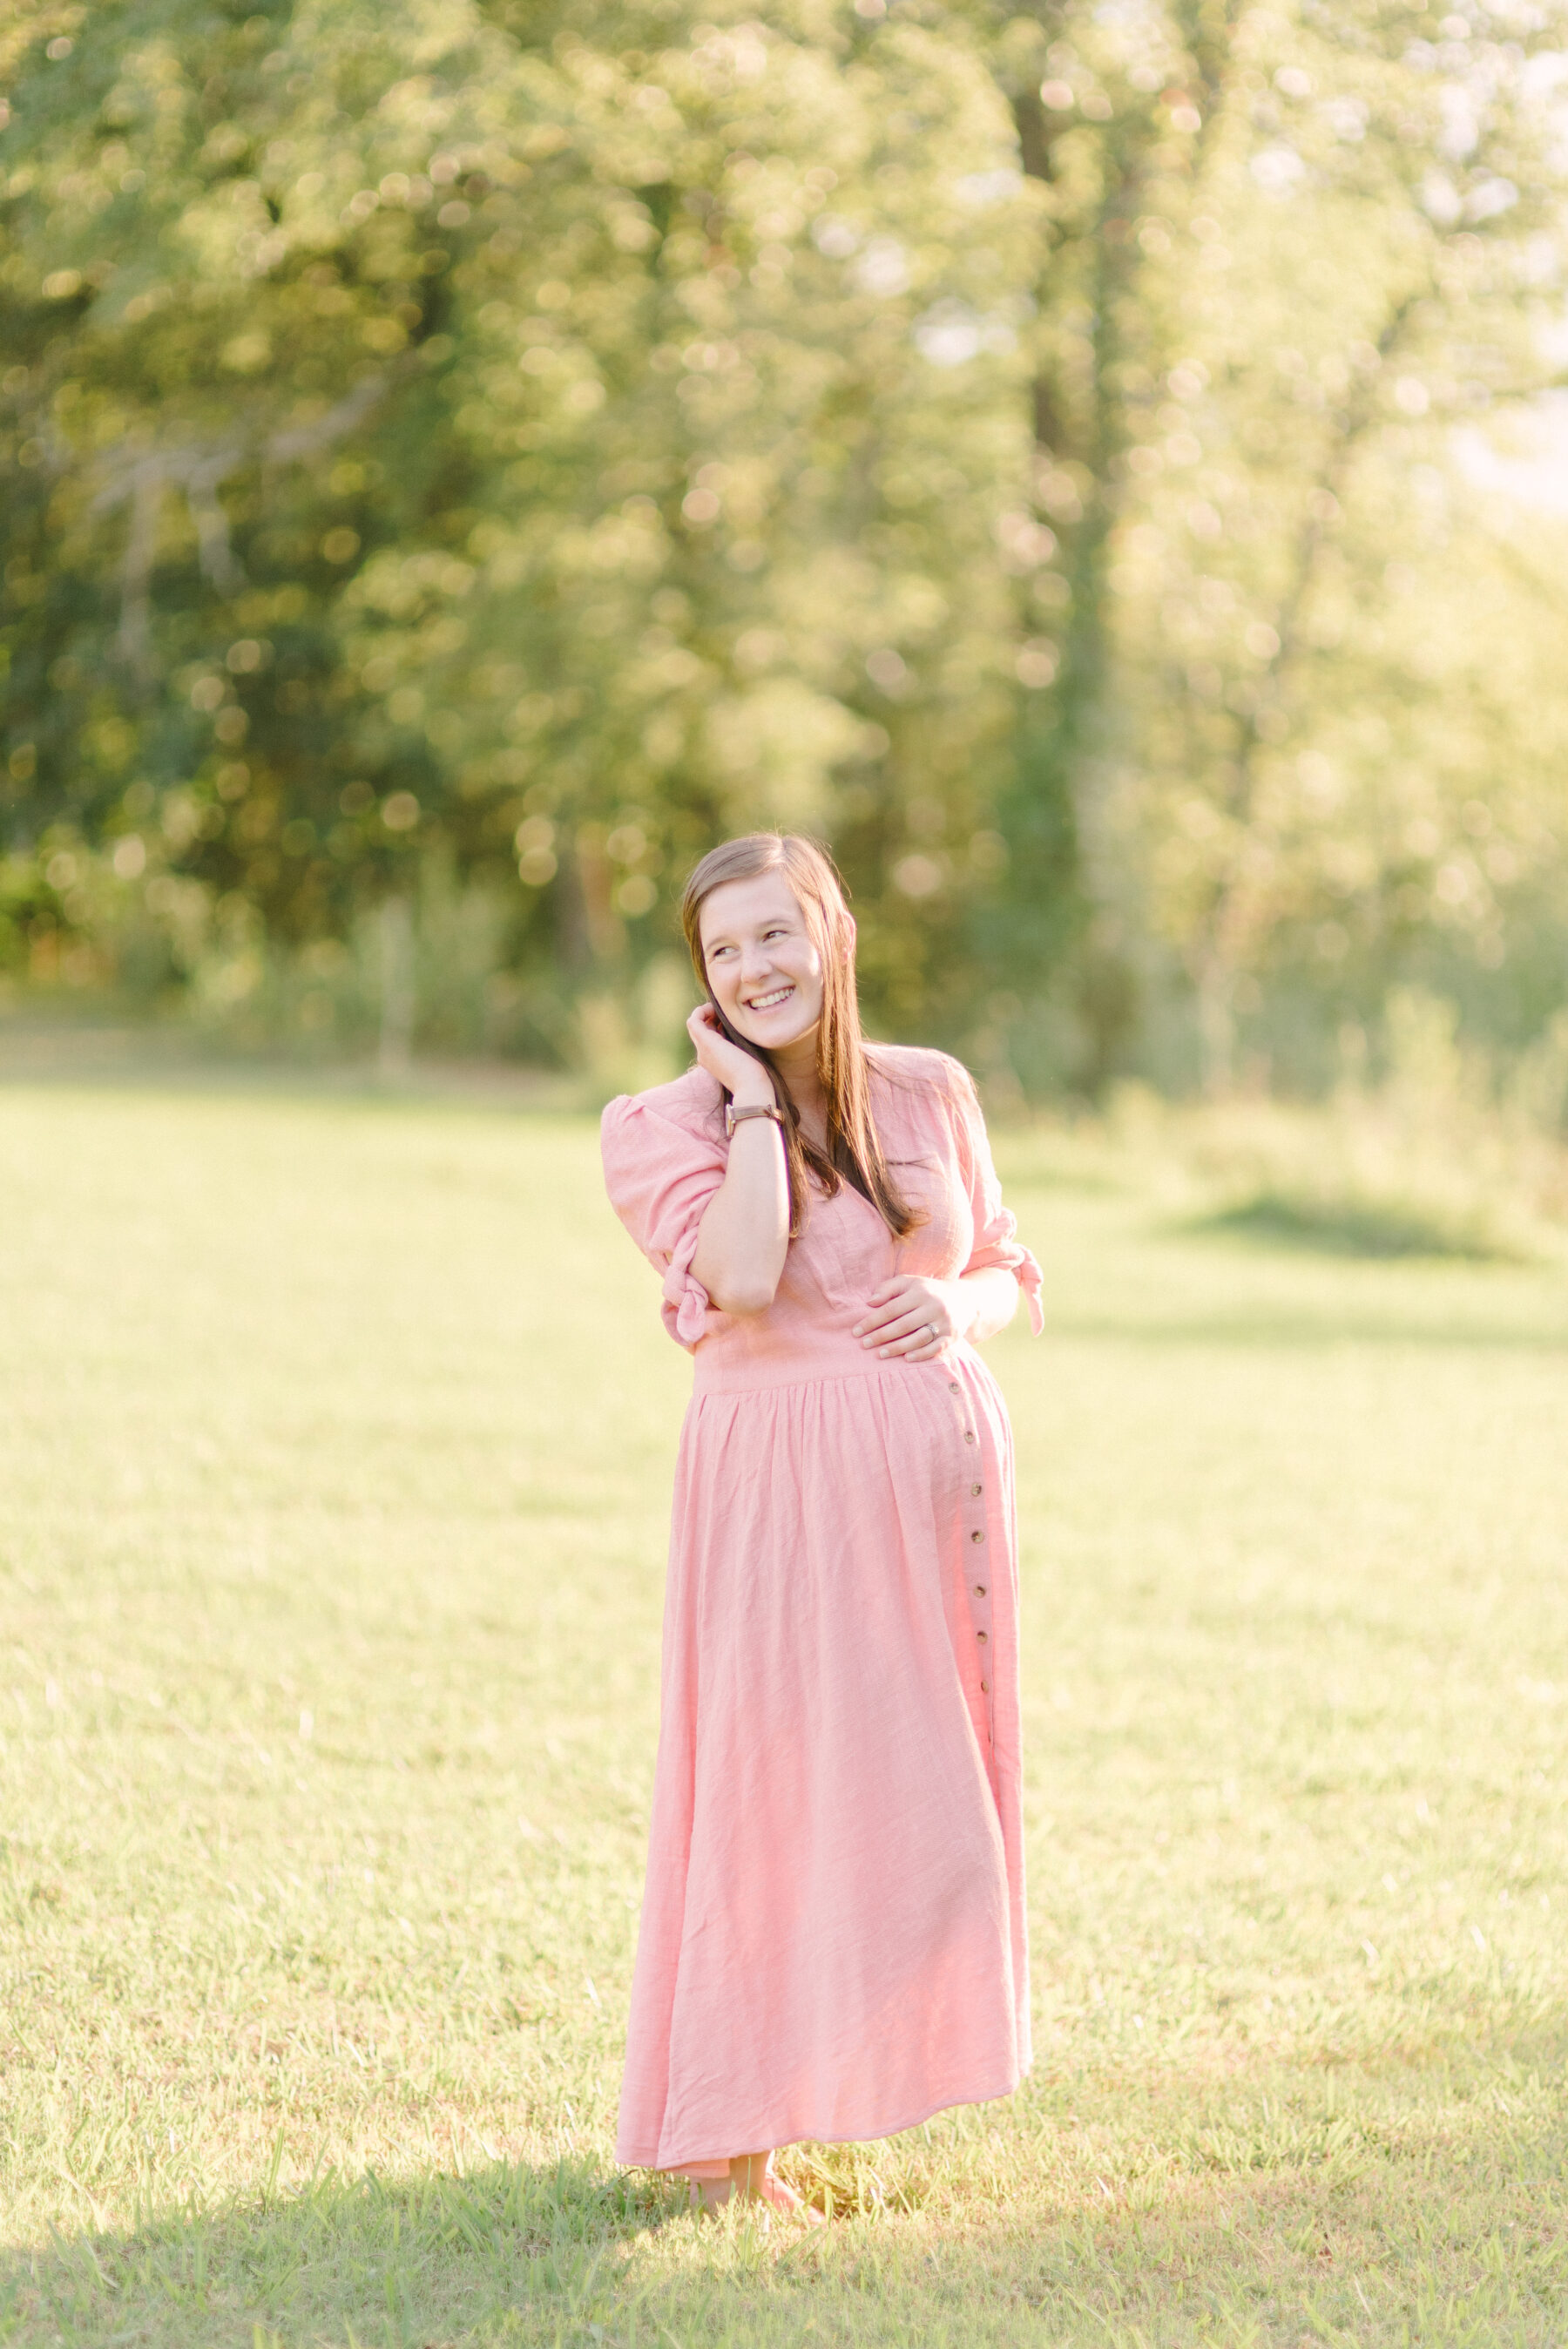 Lindsey Brown Photography's Light and Airy Nashville Maternity Session